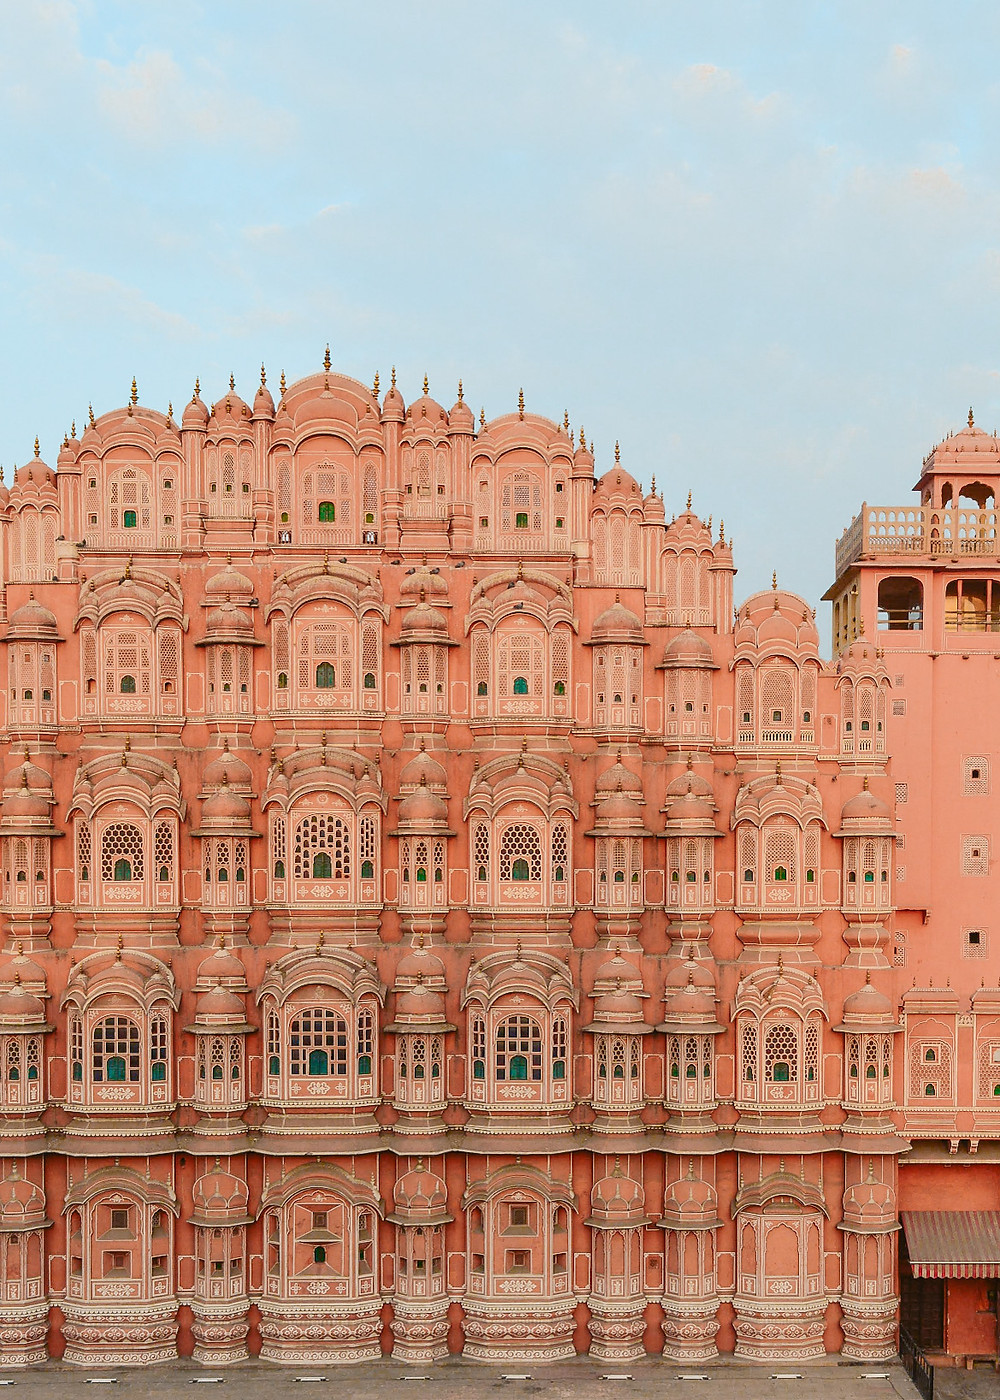 Hawa Mahal means Palace of Breeze, and is undoubtedly the city's most iconic pink facade with its stunning latticed windows. It is an extension of the Royal City Palace and was designed to allow the royal ladies to observe processions and public activities on the streets without being seen. This was during the 'pardah' era where women wore a veil to cover their faces as a social and religious practice. The small windows of the Hawa Mahal were designed in a way to keep the breeze flowing within the palace through its nine hundred plus windows. To see the famous facade in all its glory is free as it sits on a busy main road named after the palace. However, to see the rest of the palace and its grounds, a ticket is required. It is best to see and photograph the Hawa Mahal early morning or evening as otherwise it is flooded in direct sunlight.